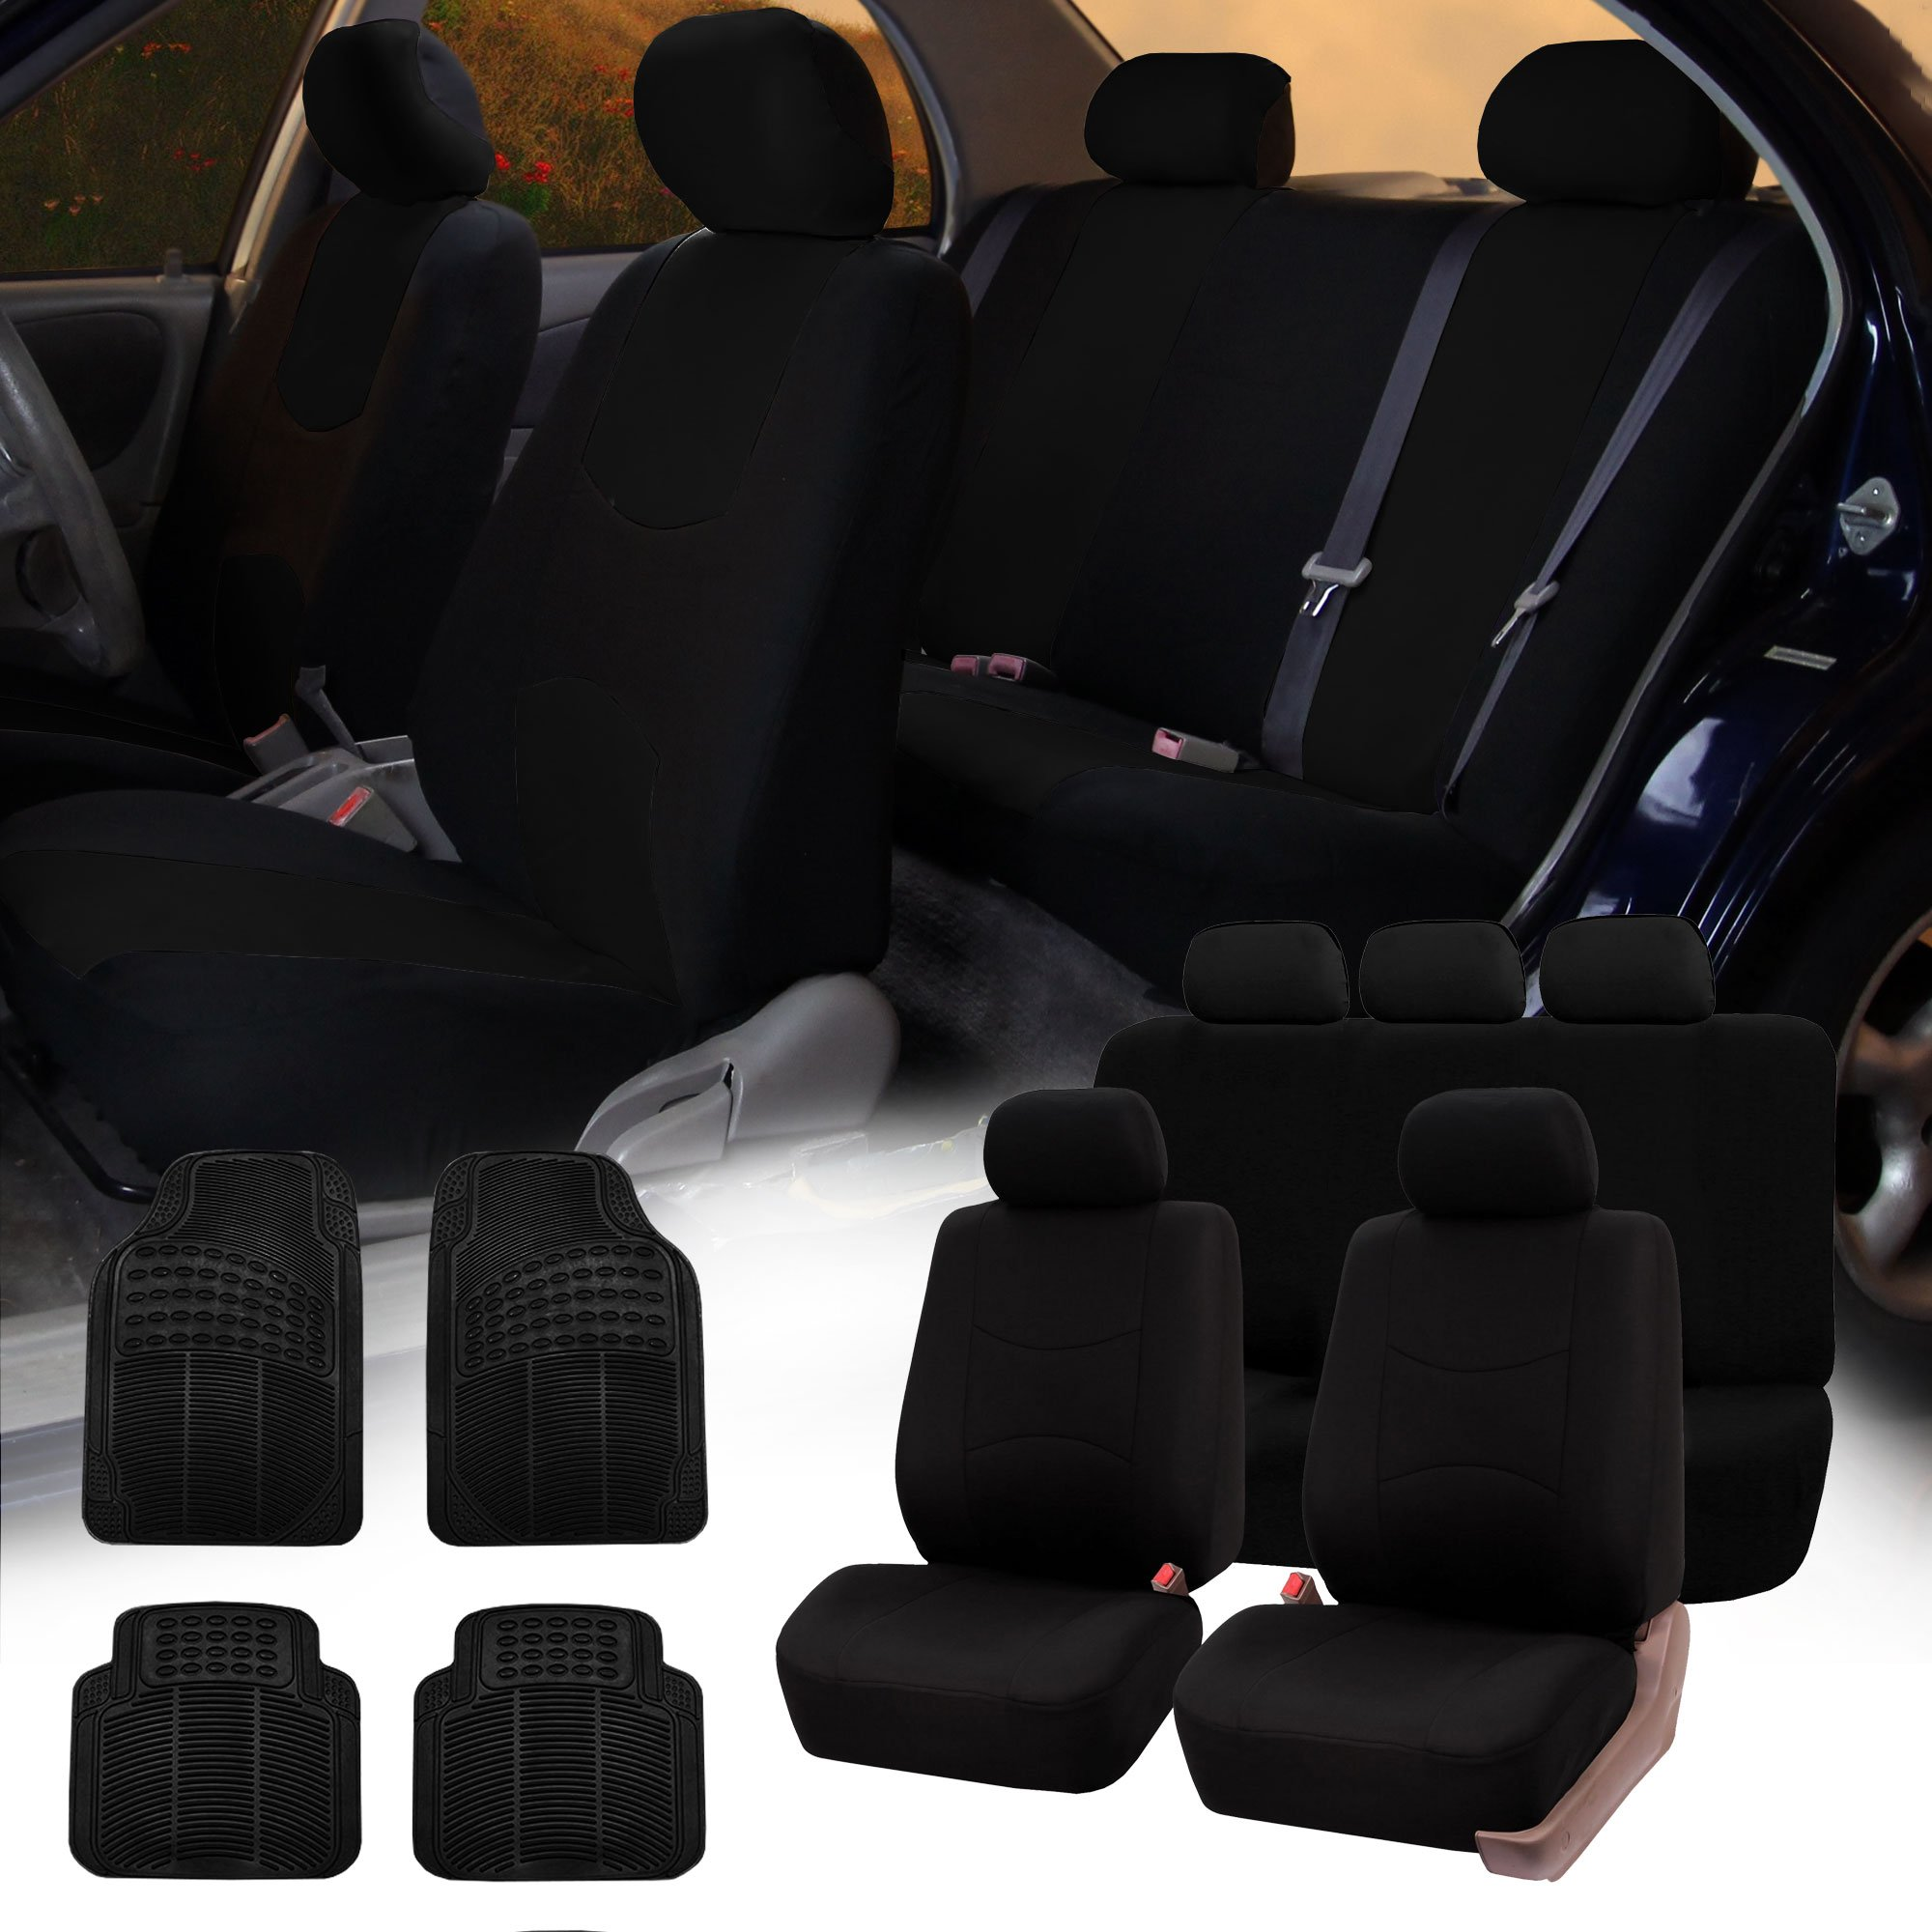 FH GROUP FH-FB051115 + R11305 Combo Set: Black Multifunctional Flat Cloth Car Seat Covers, Airbag Compatible and Split Ready and Black Rubber Floor Mats